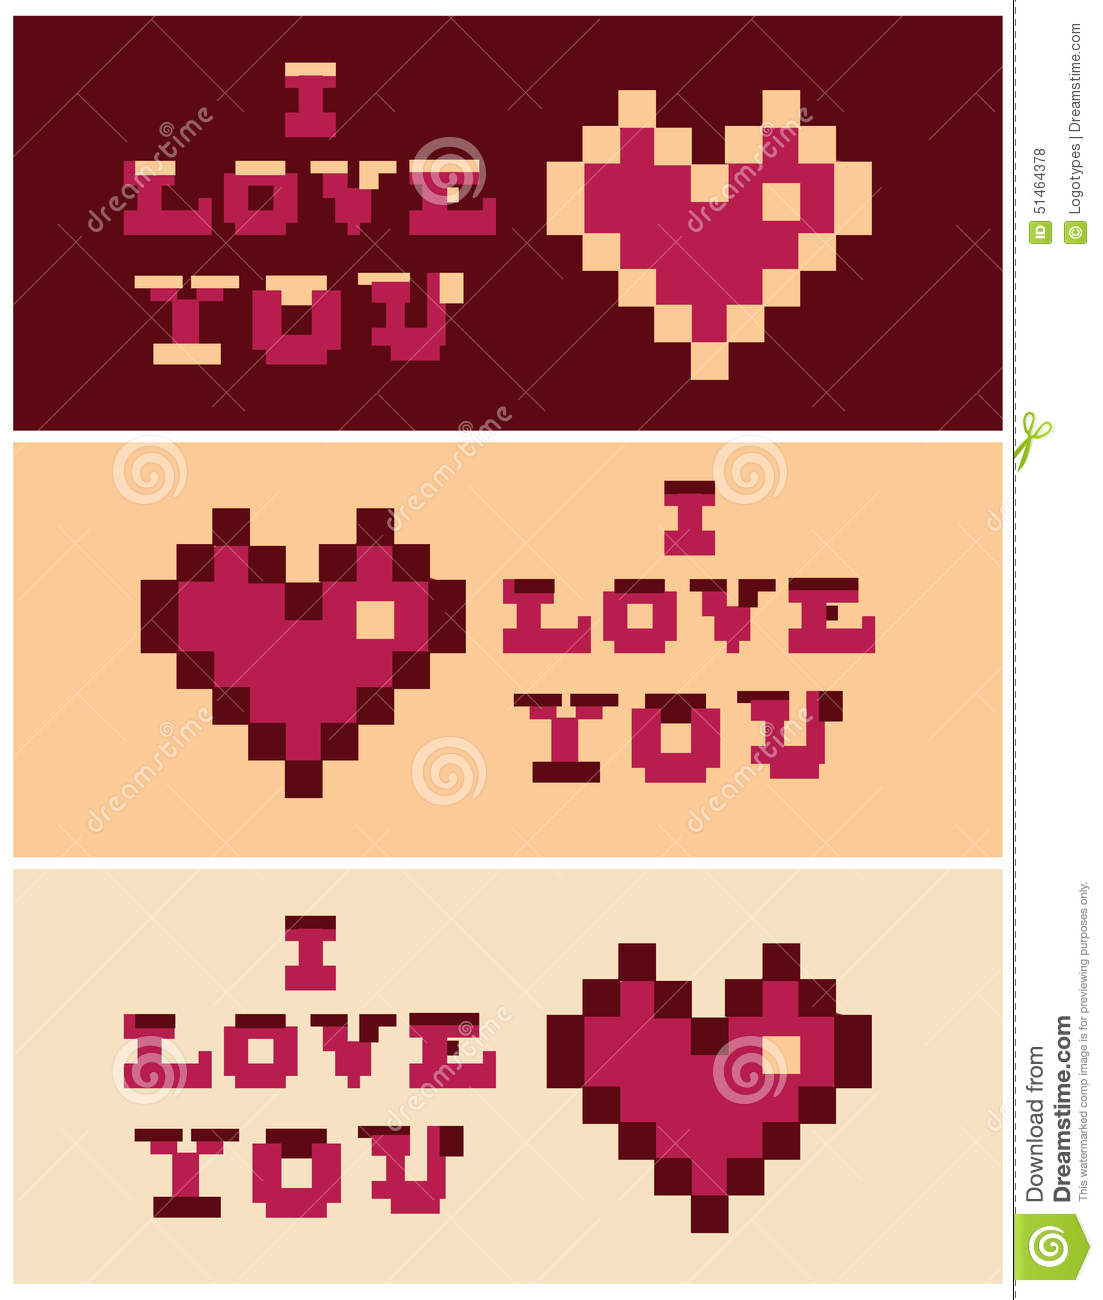 pixel art i love you heart and text set banners stock illustration image 51464378. Black Bedroom Furniture Sets. Home Design Ideas